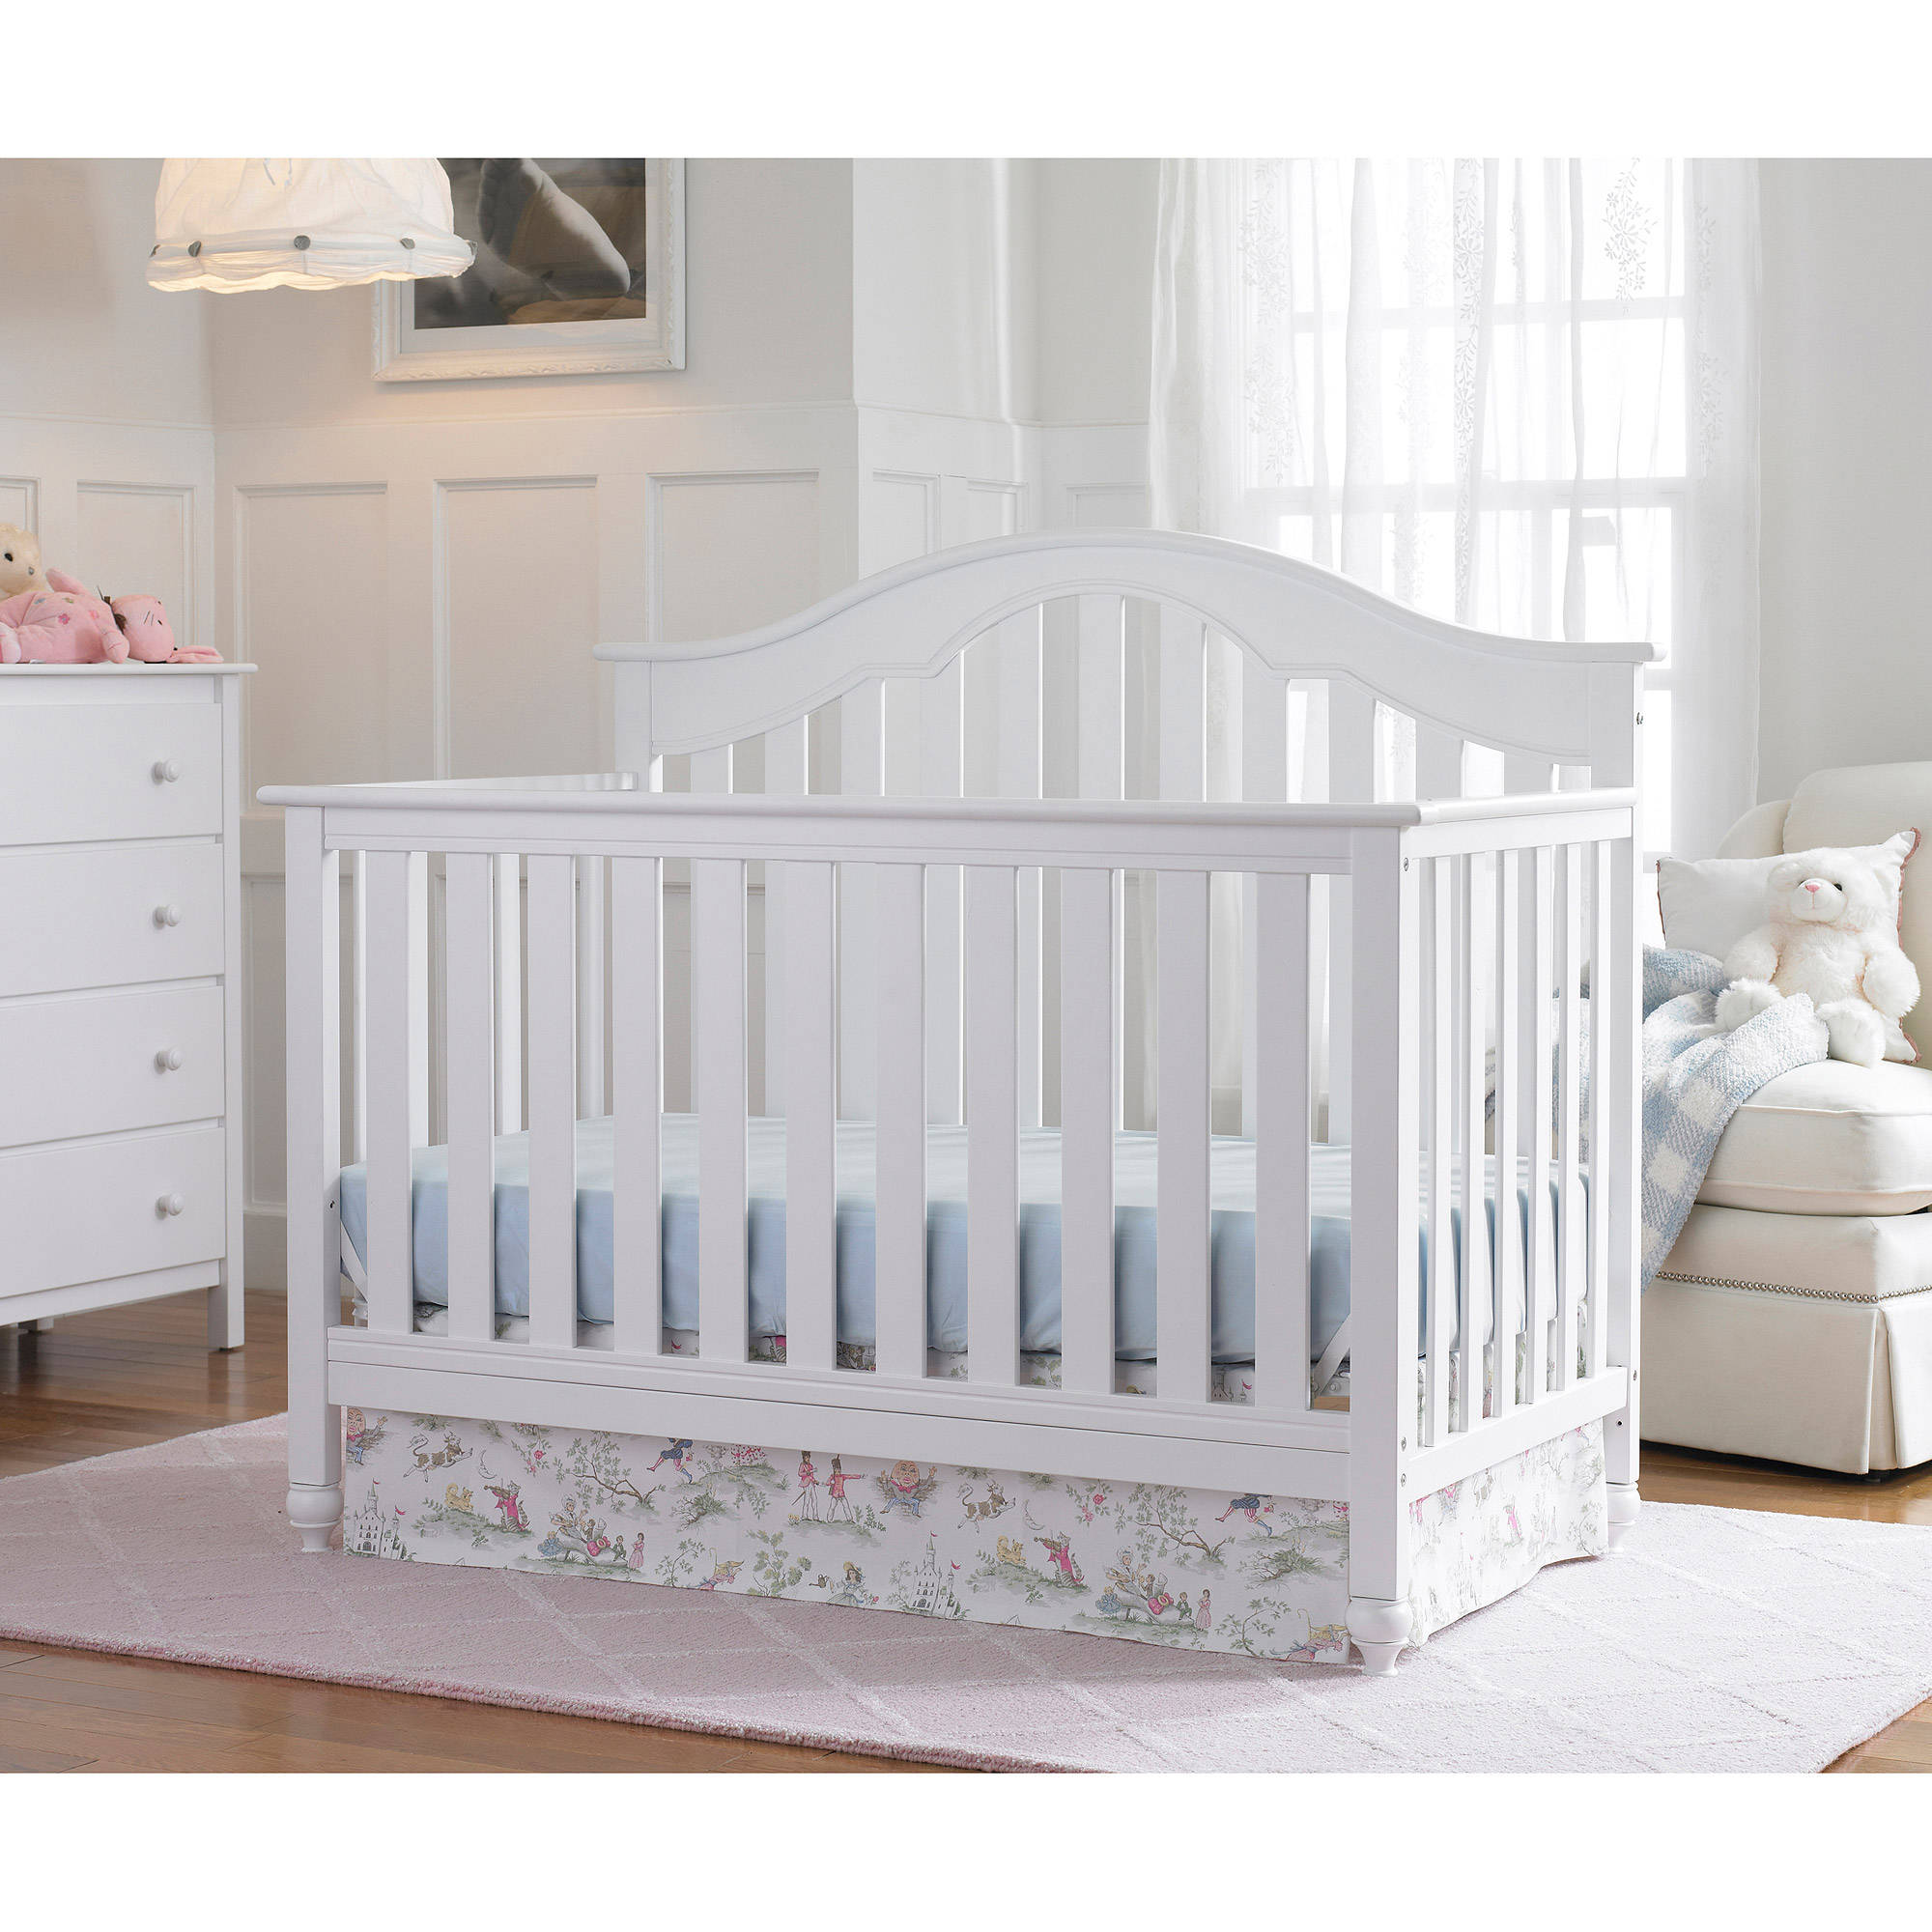 Fisher-Price Kingsport Just the Right Height™ Fixed-Side Convertible Crib, Choose your Finish